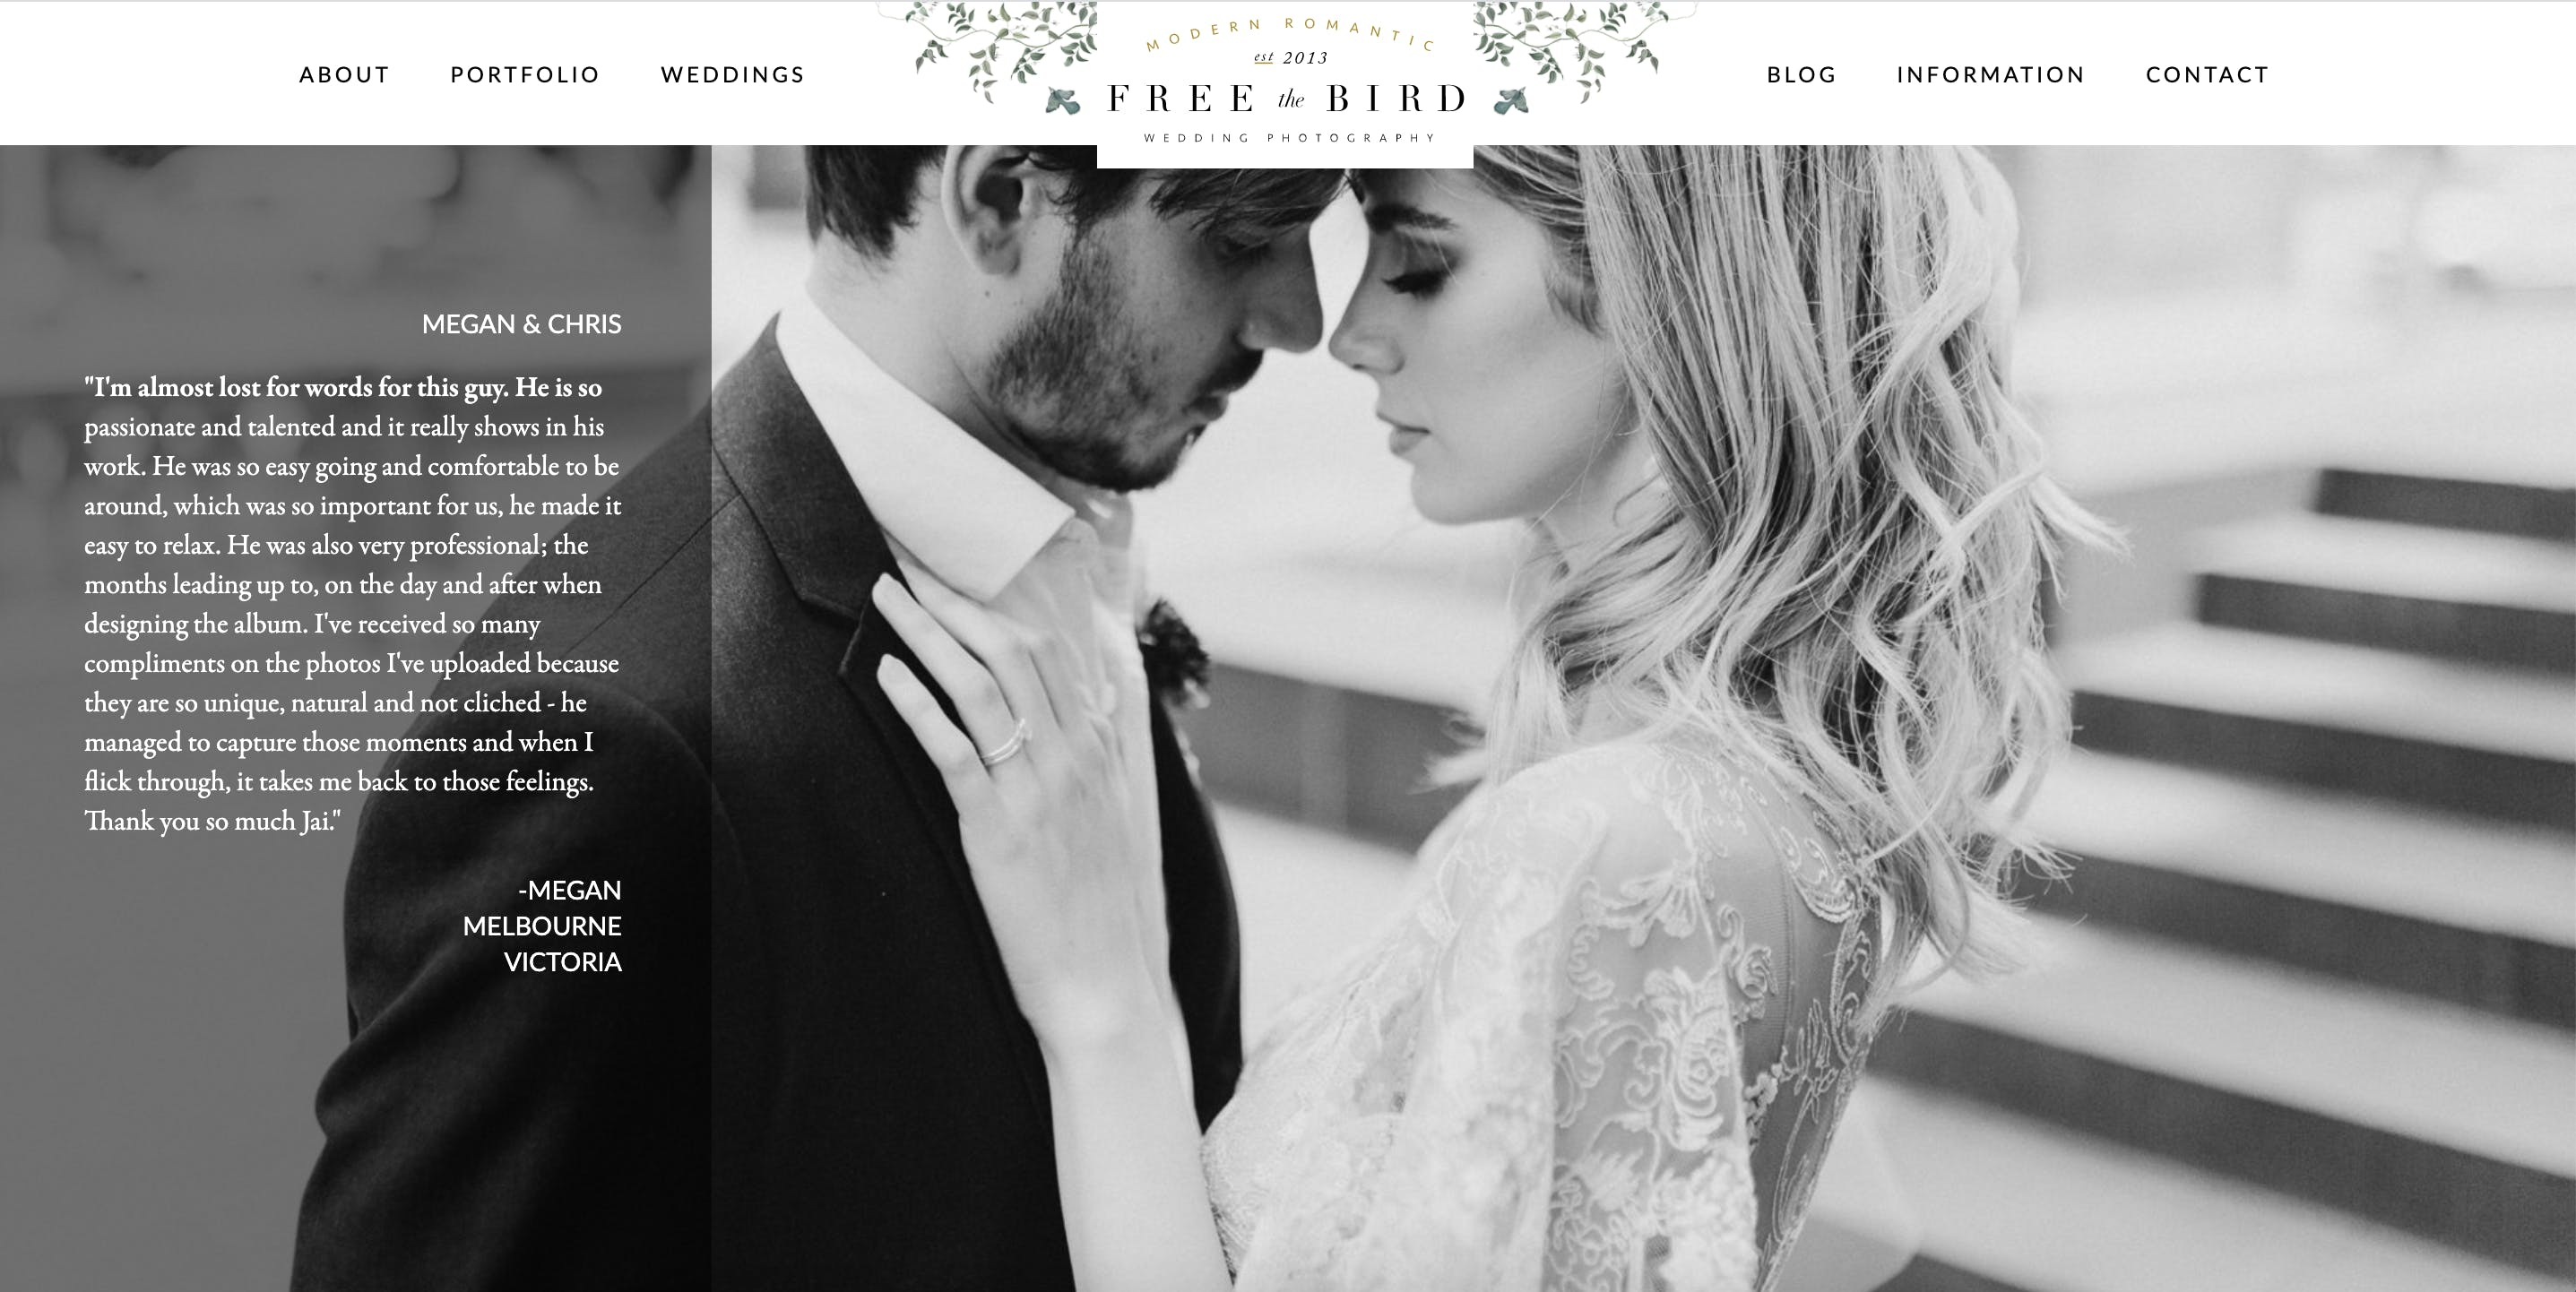 Wedding Photographer Jai Long uses a testimonial on his home page to book more clients.